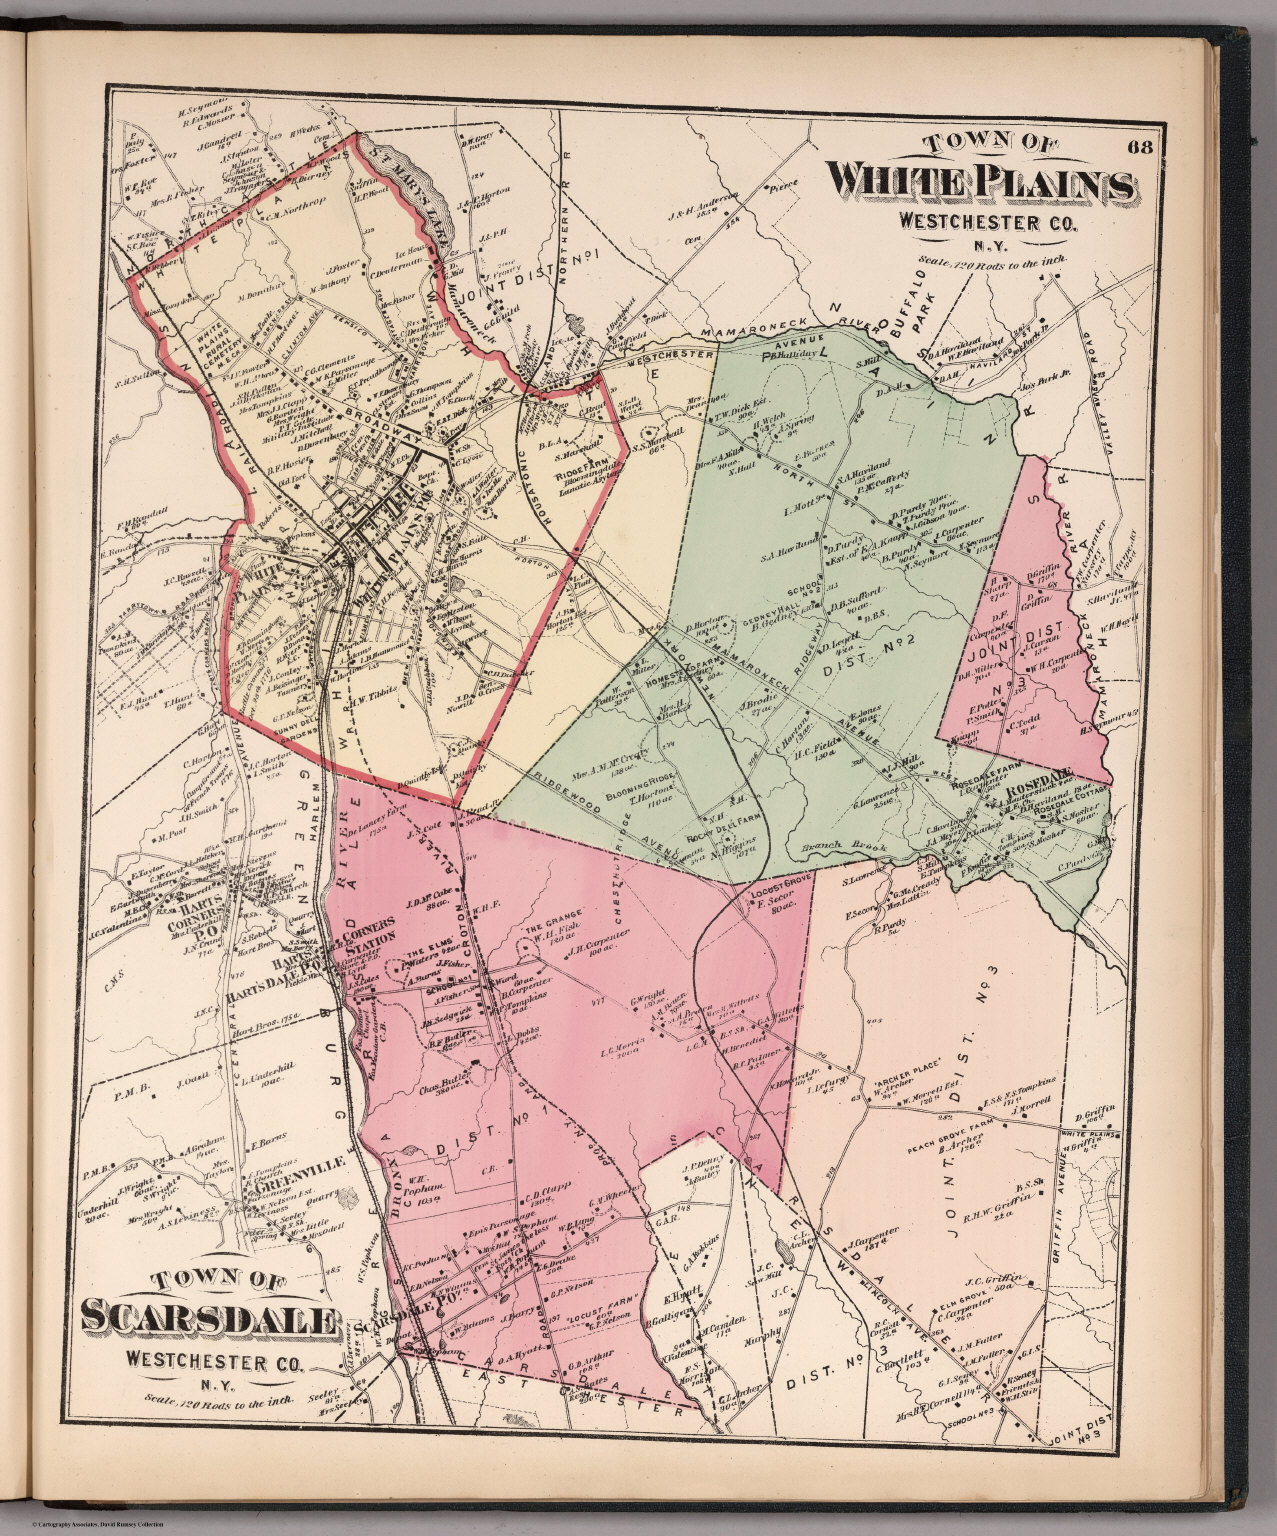 Towns of White Plains and Scarsdale, 1872.